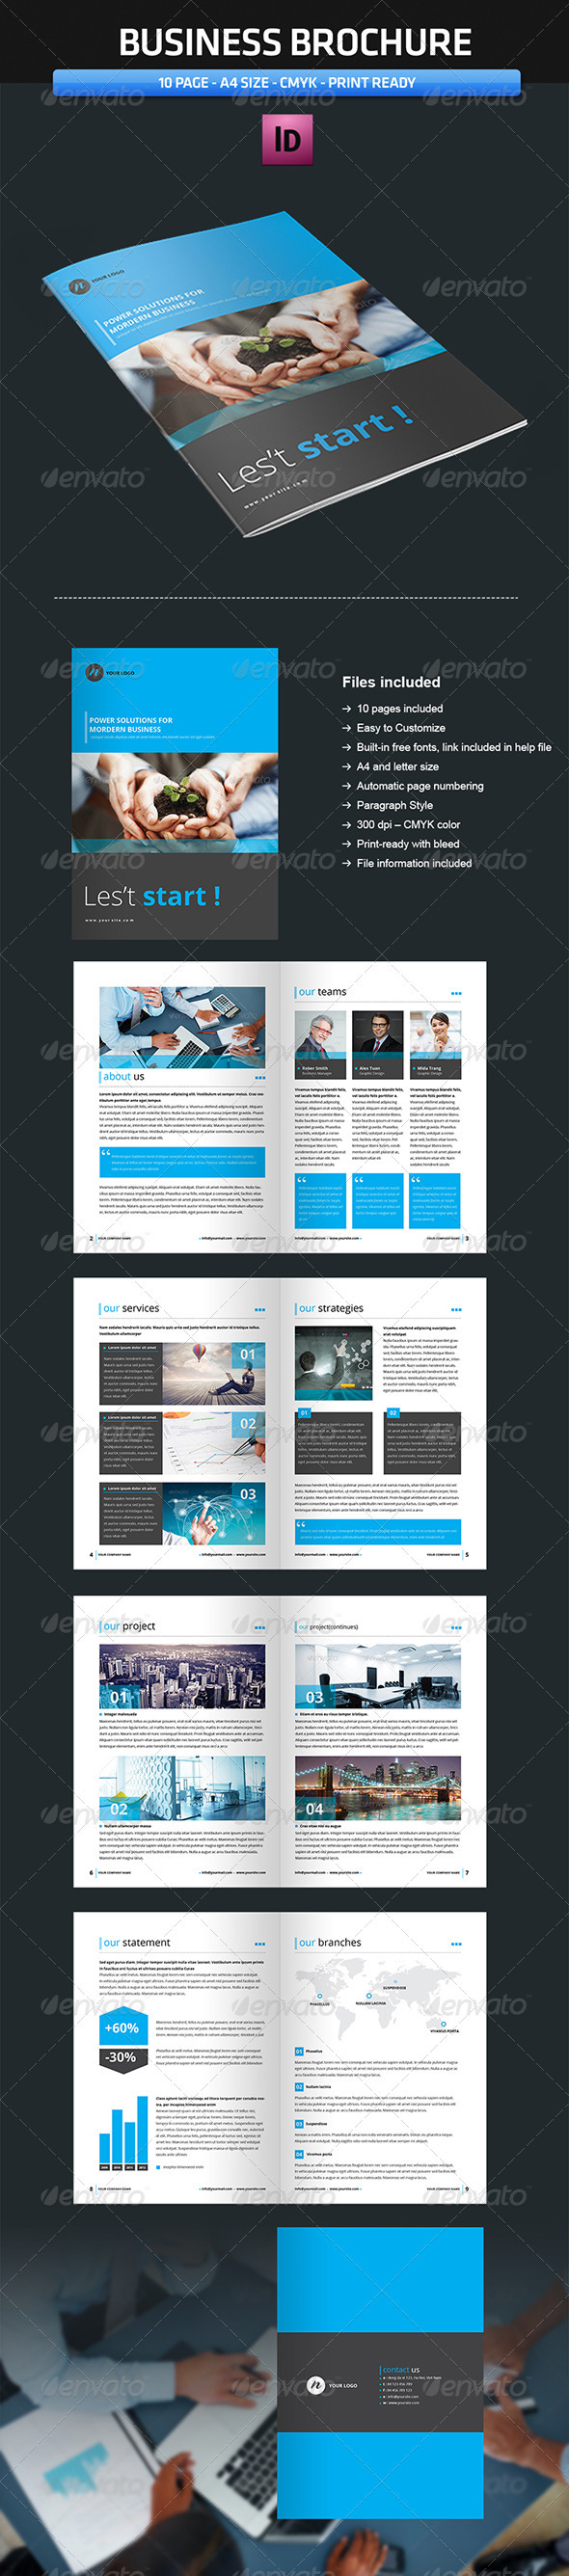 GraphicRiver Business Brochure Vol2 3800626